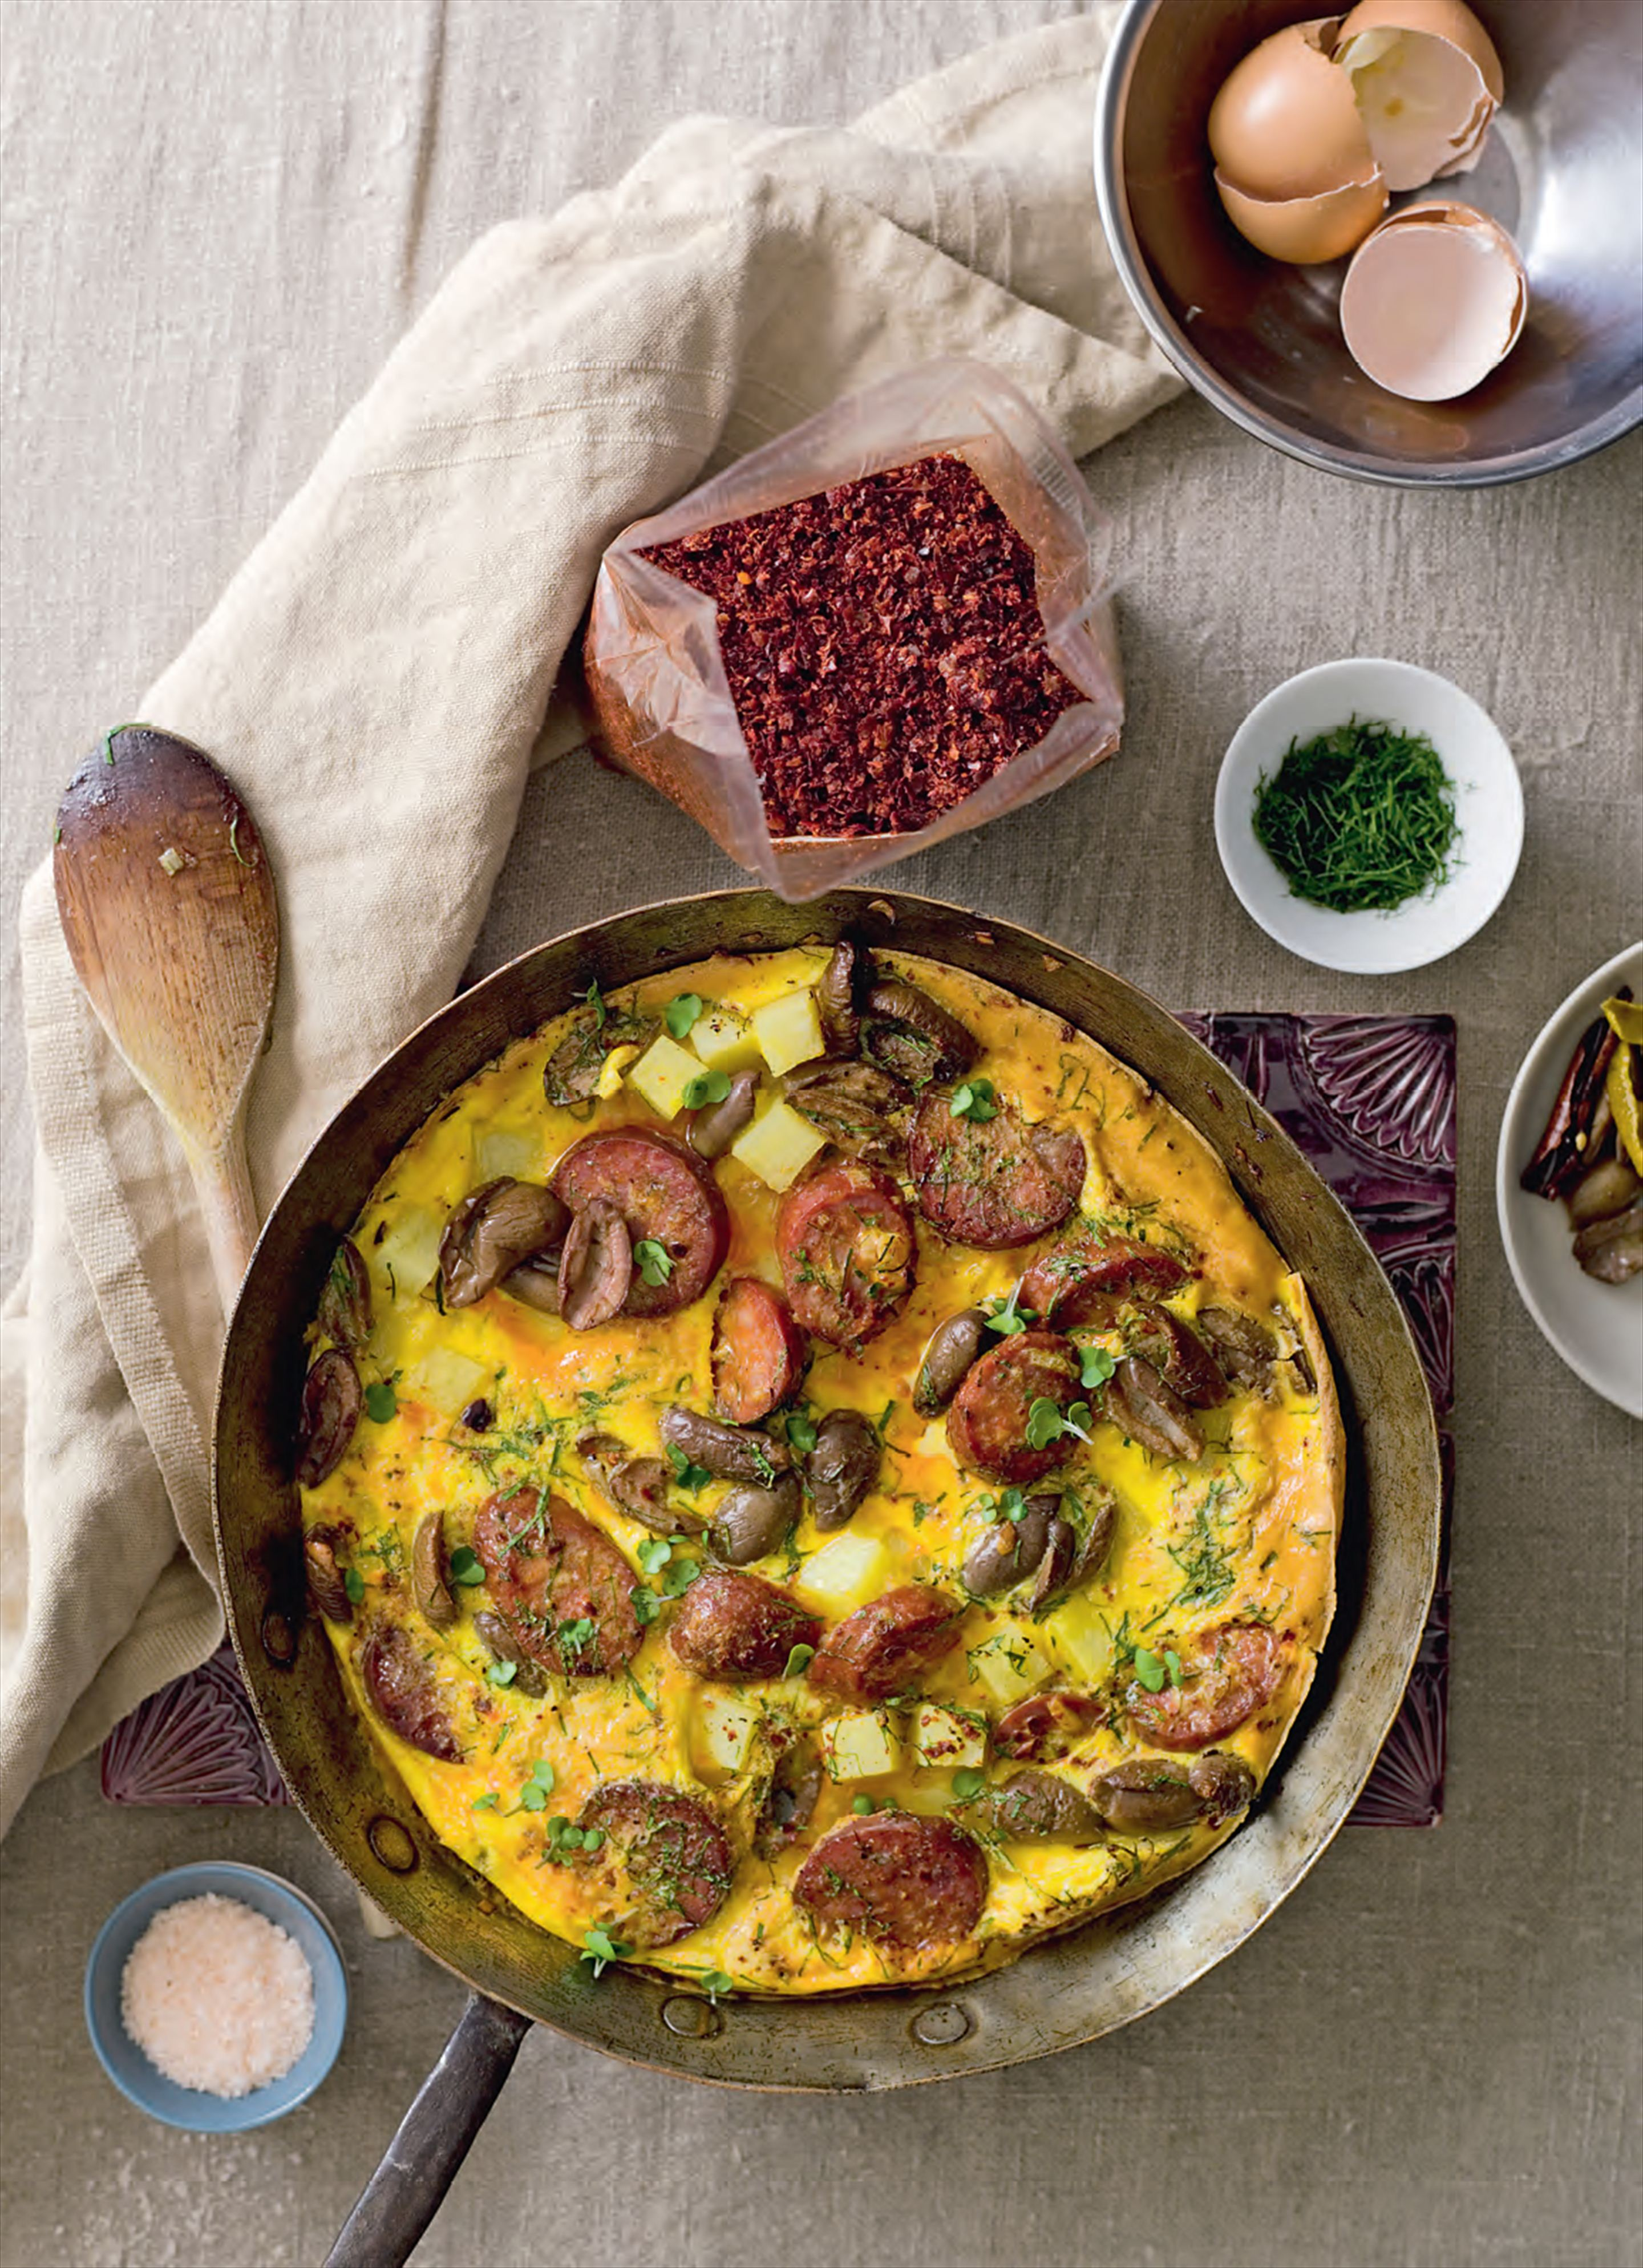 Spanish omelette with potato, green olives and chorizo